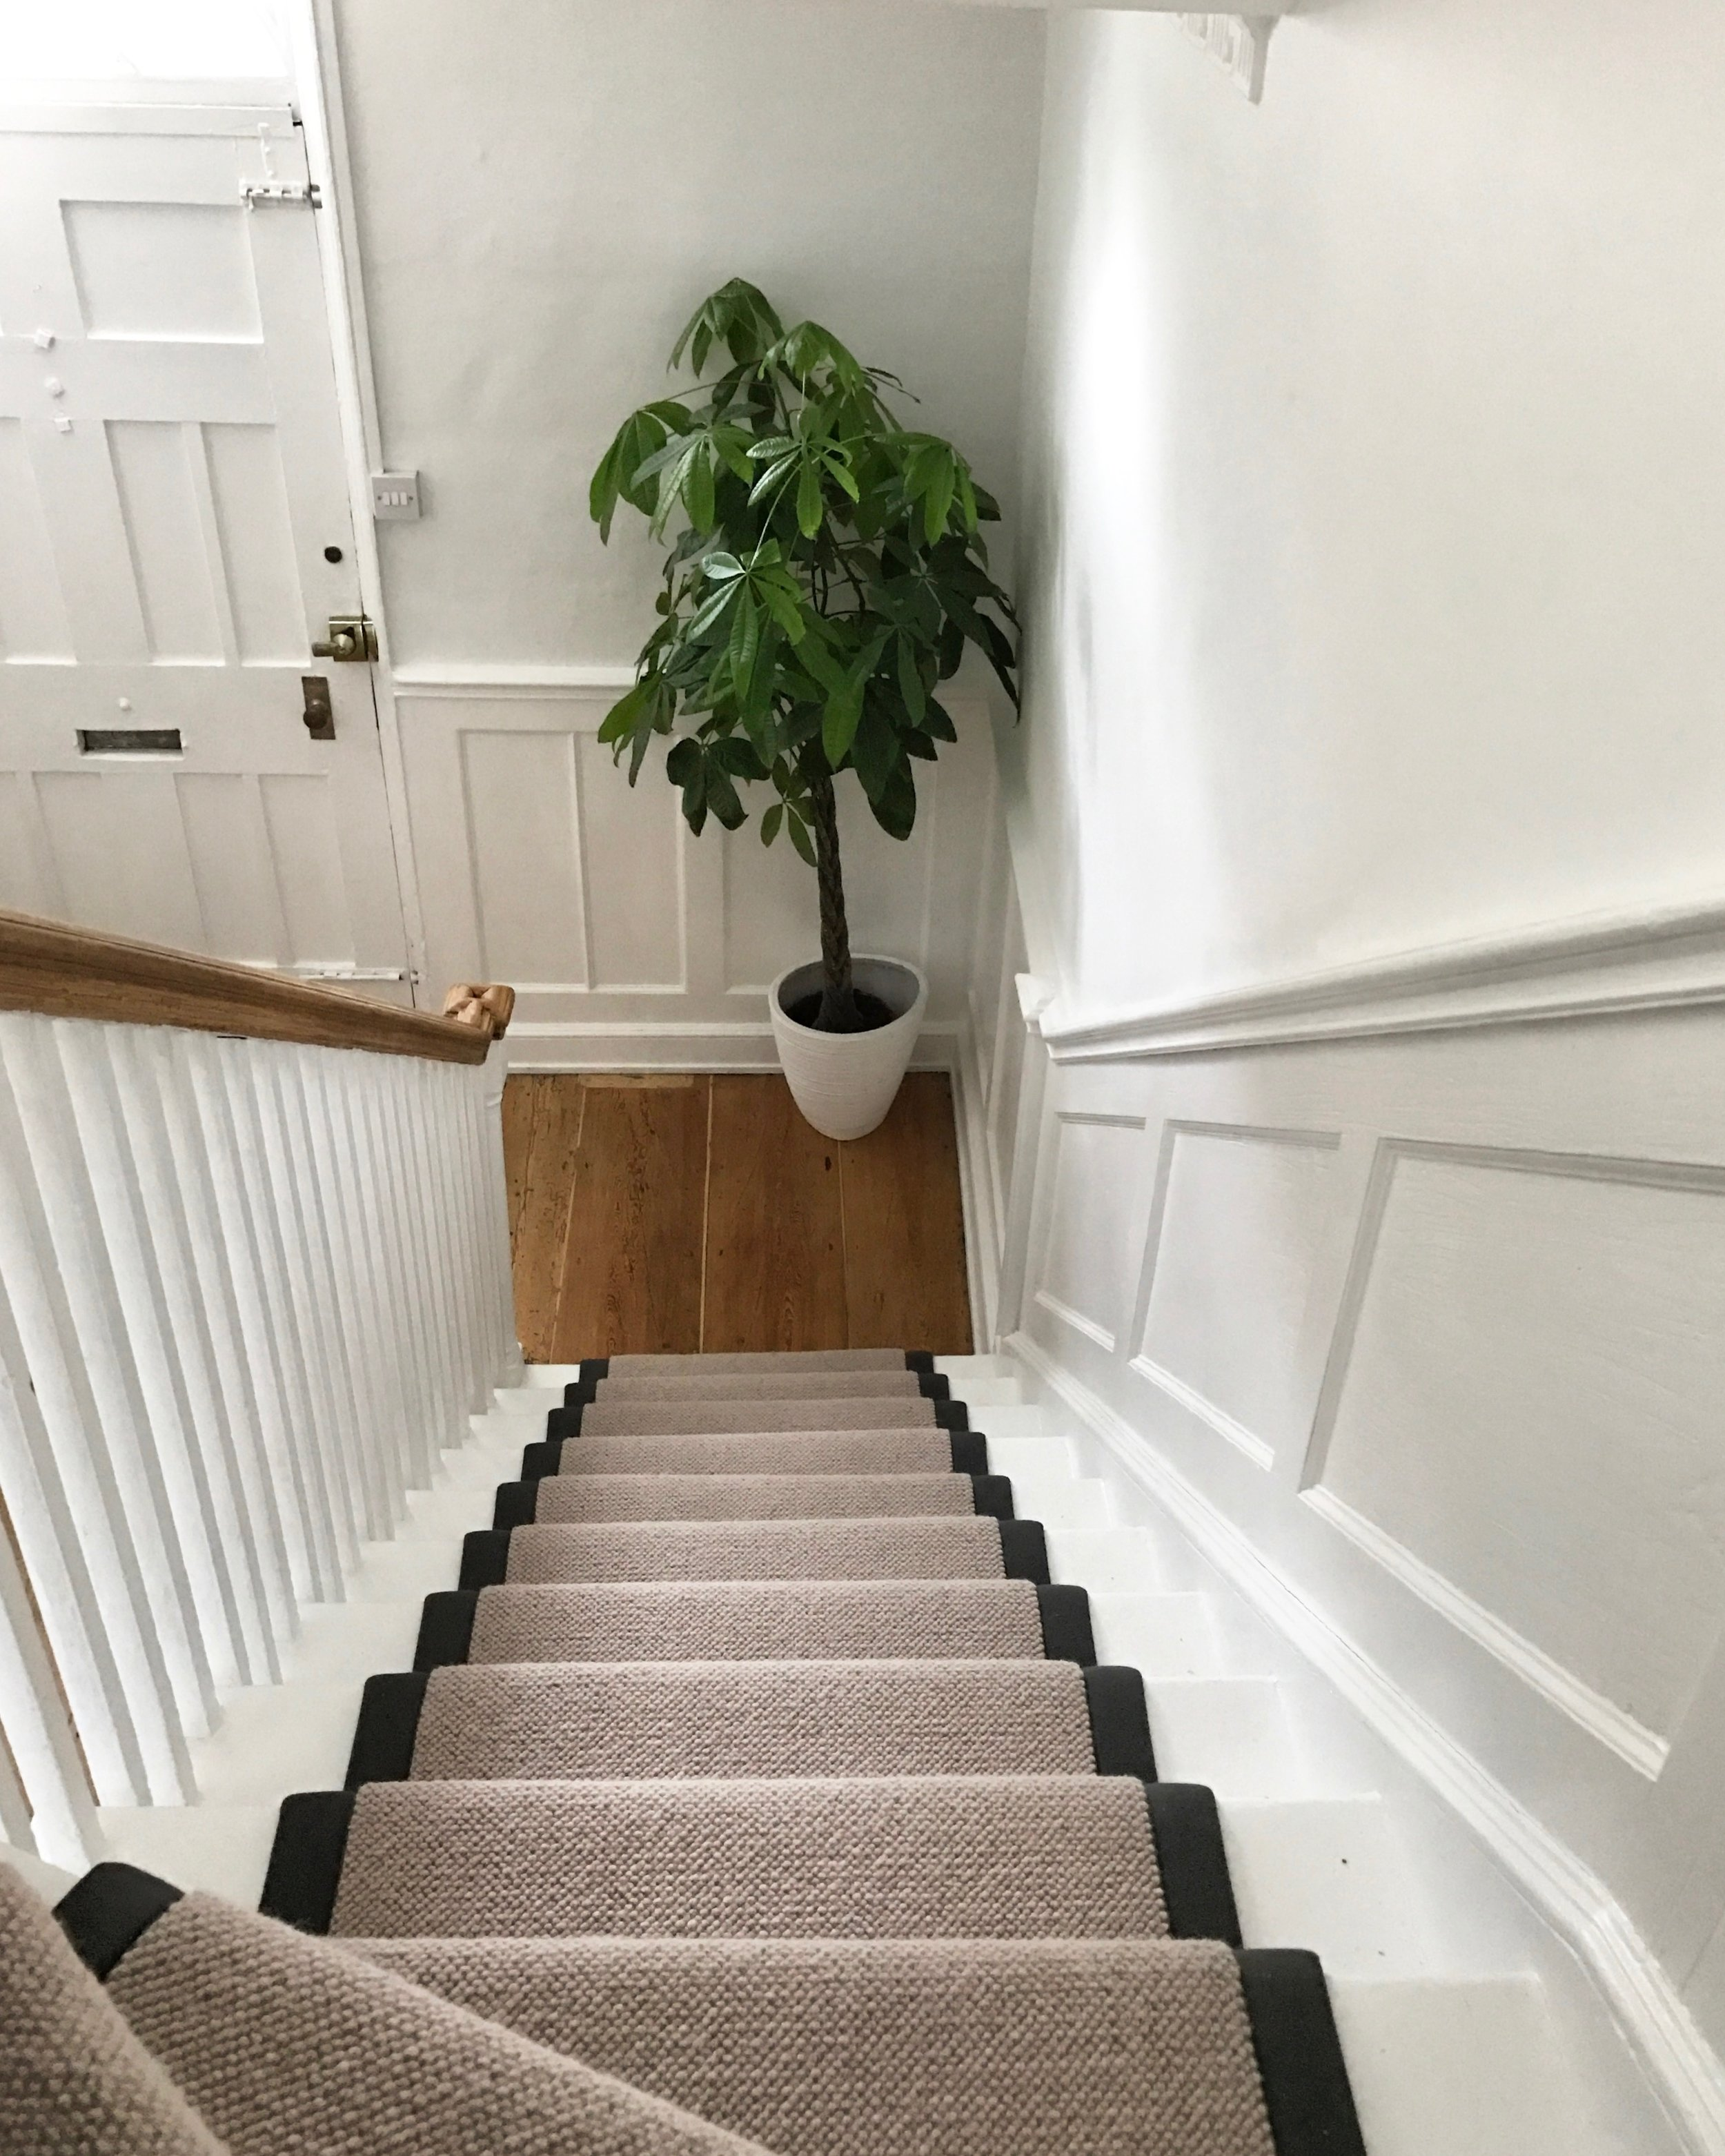 Residential: Upper & lower hallway renovation & styling including bespoke wall panelling, renovated antique floor boards, carpets 7 decoration.